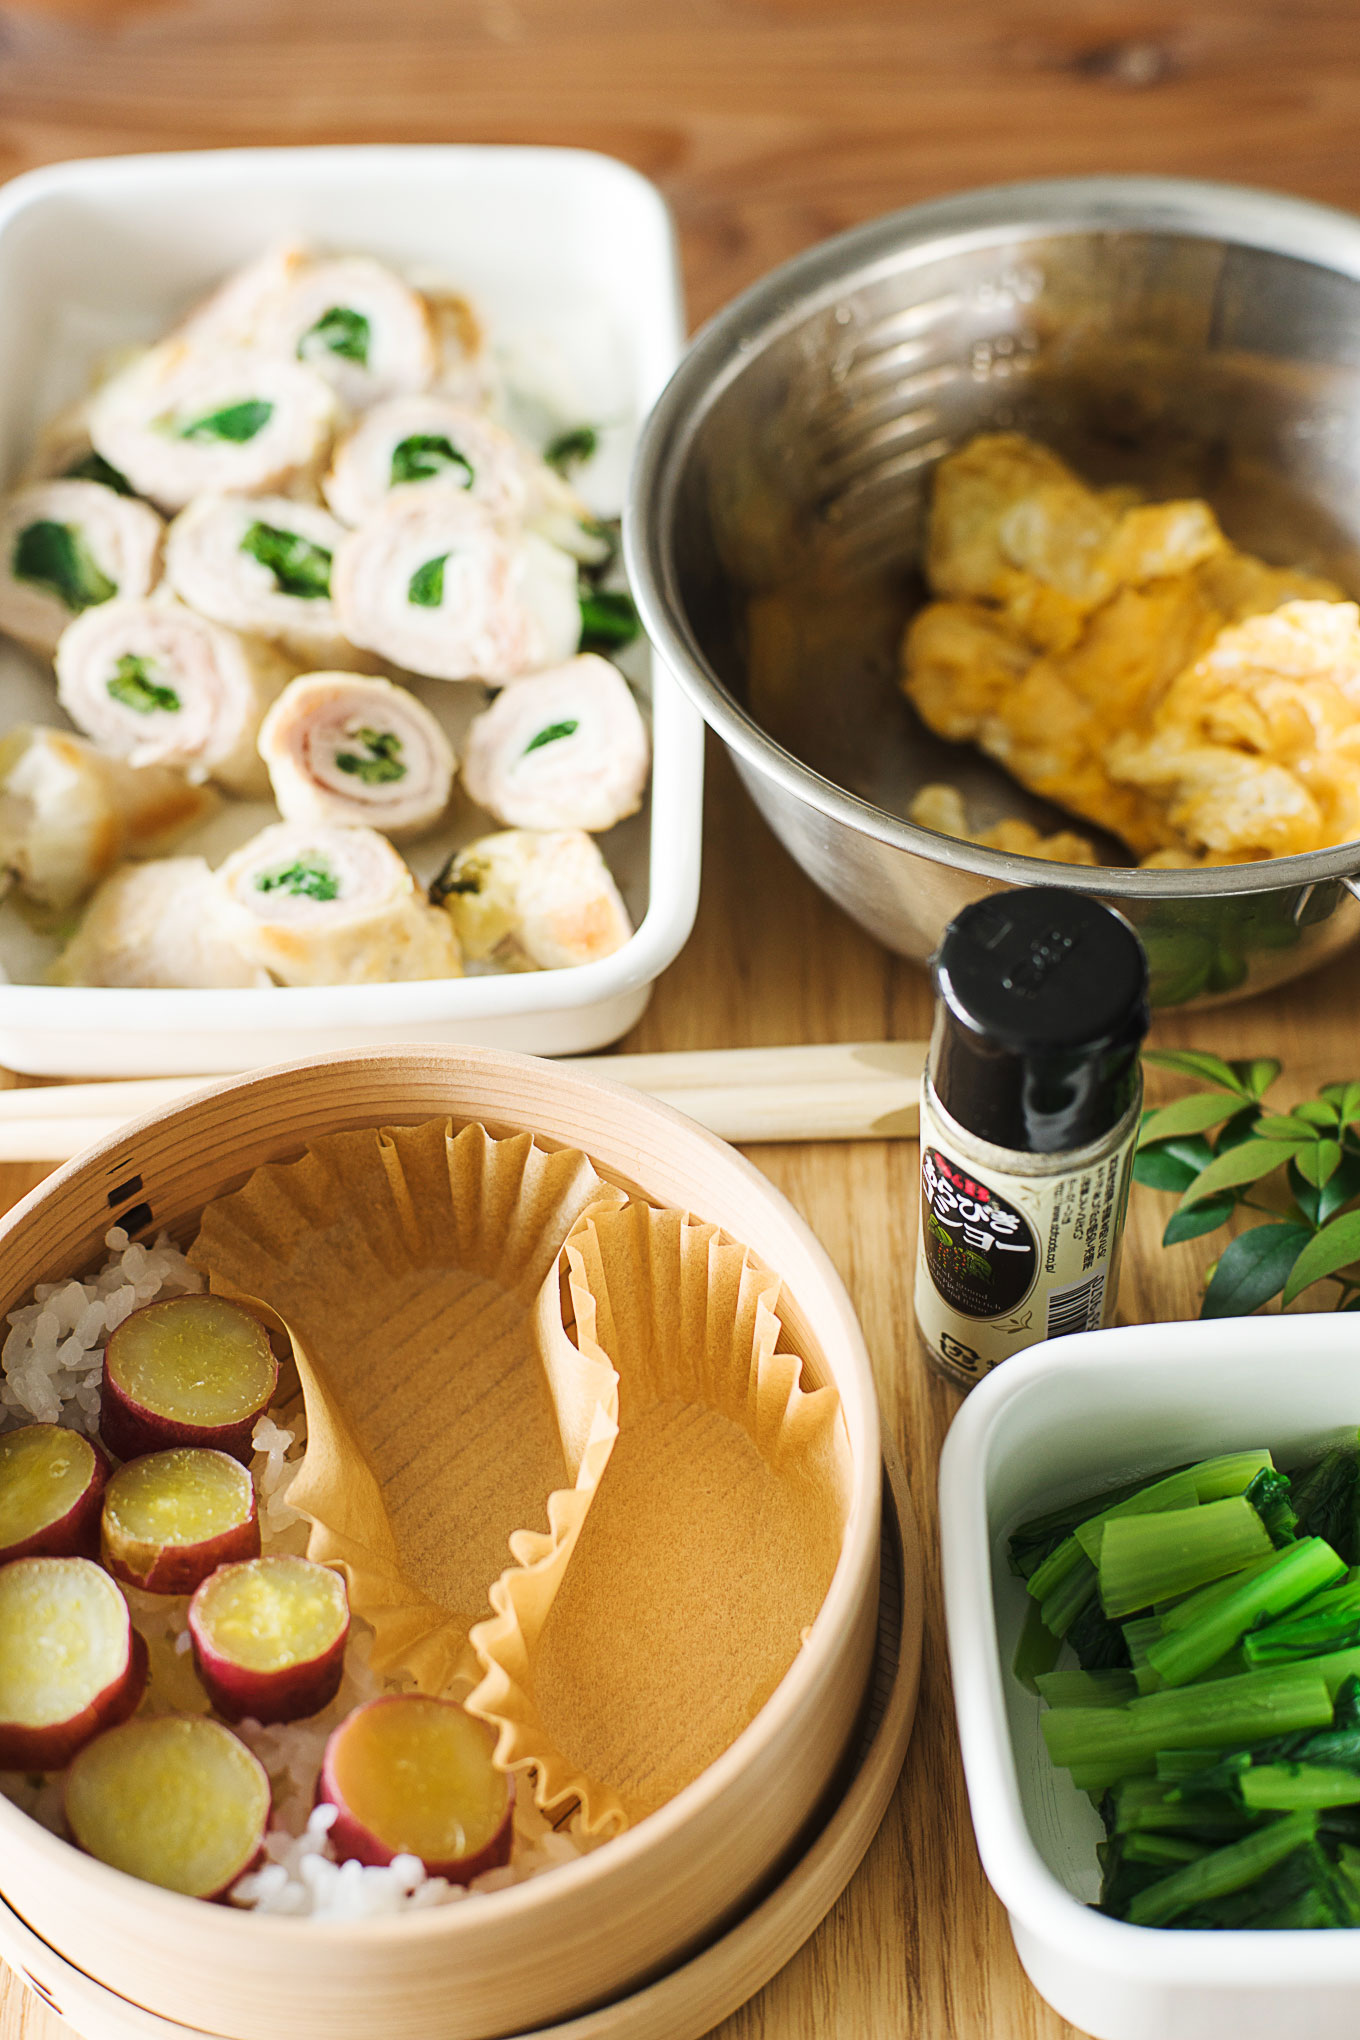 pork-and-vegetable-rolls-magewappa-bento-1